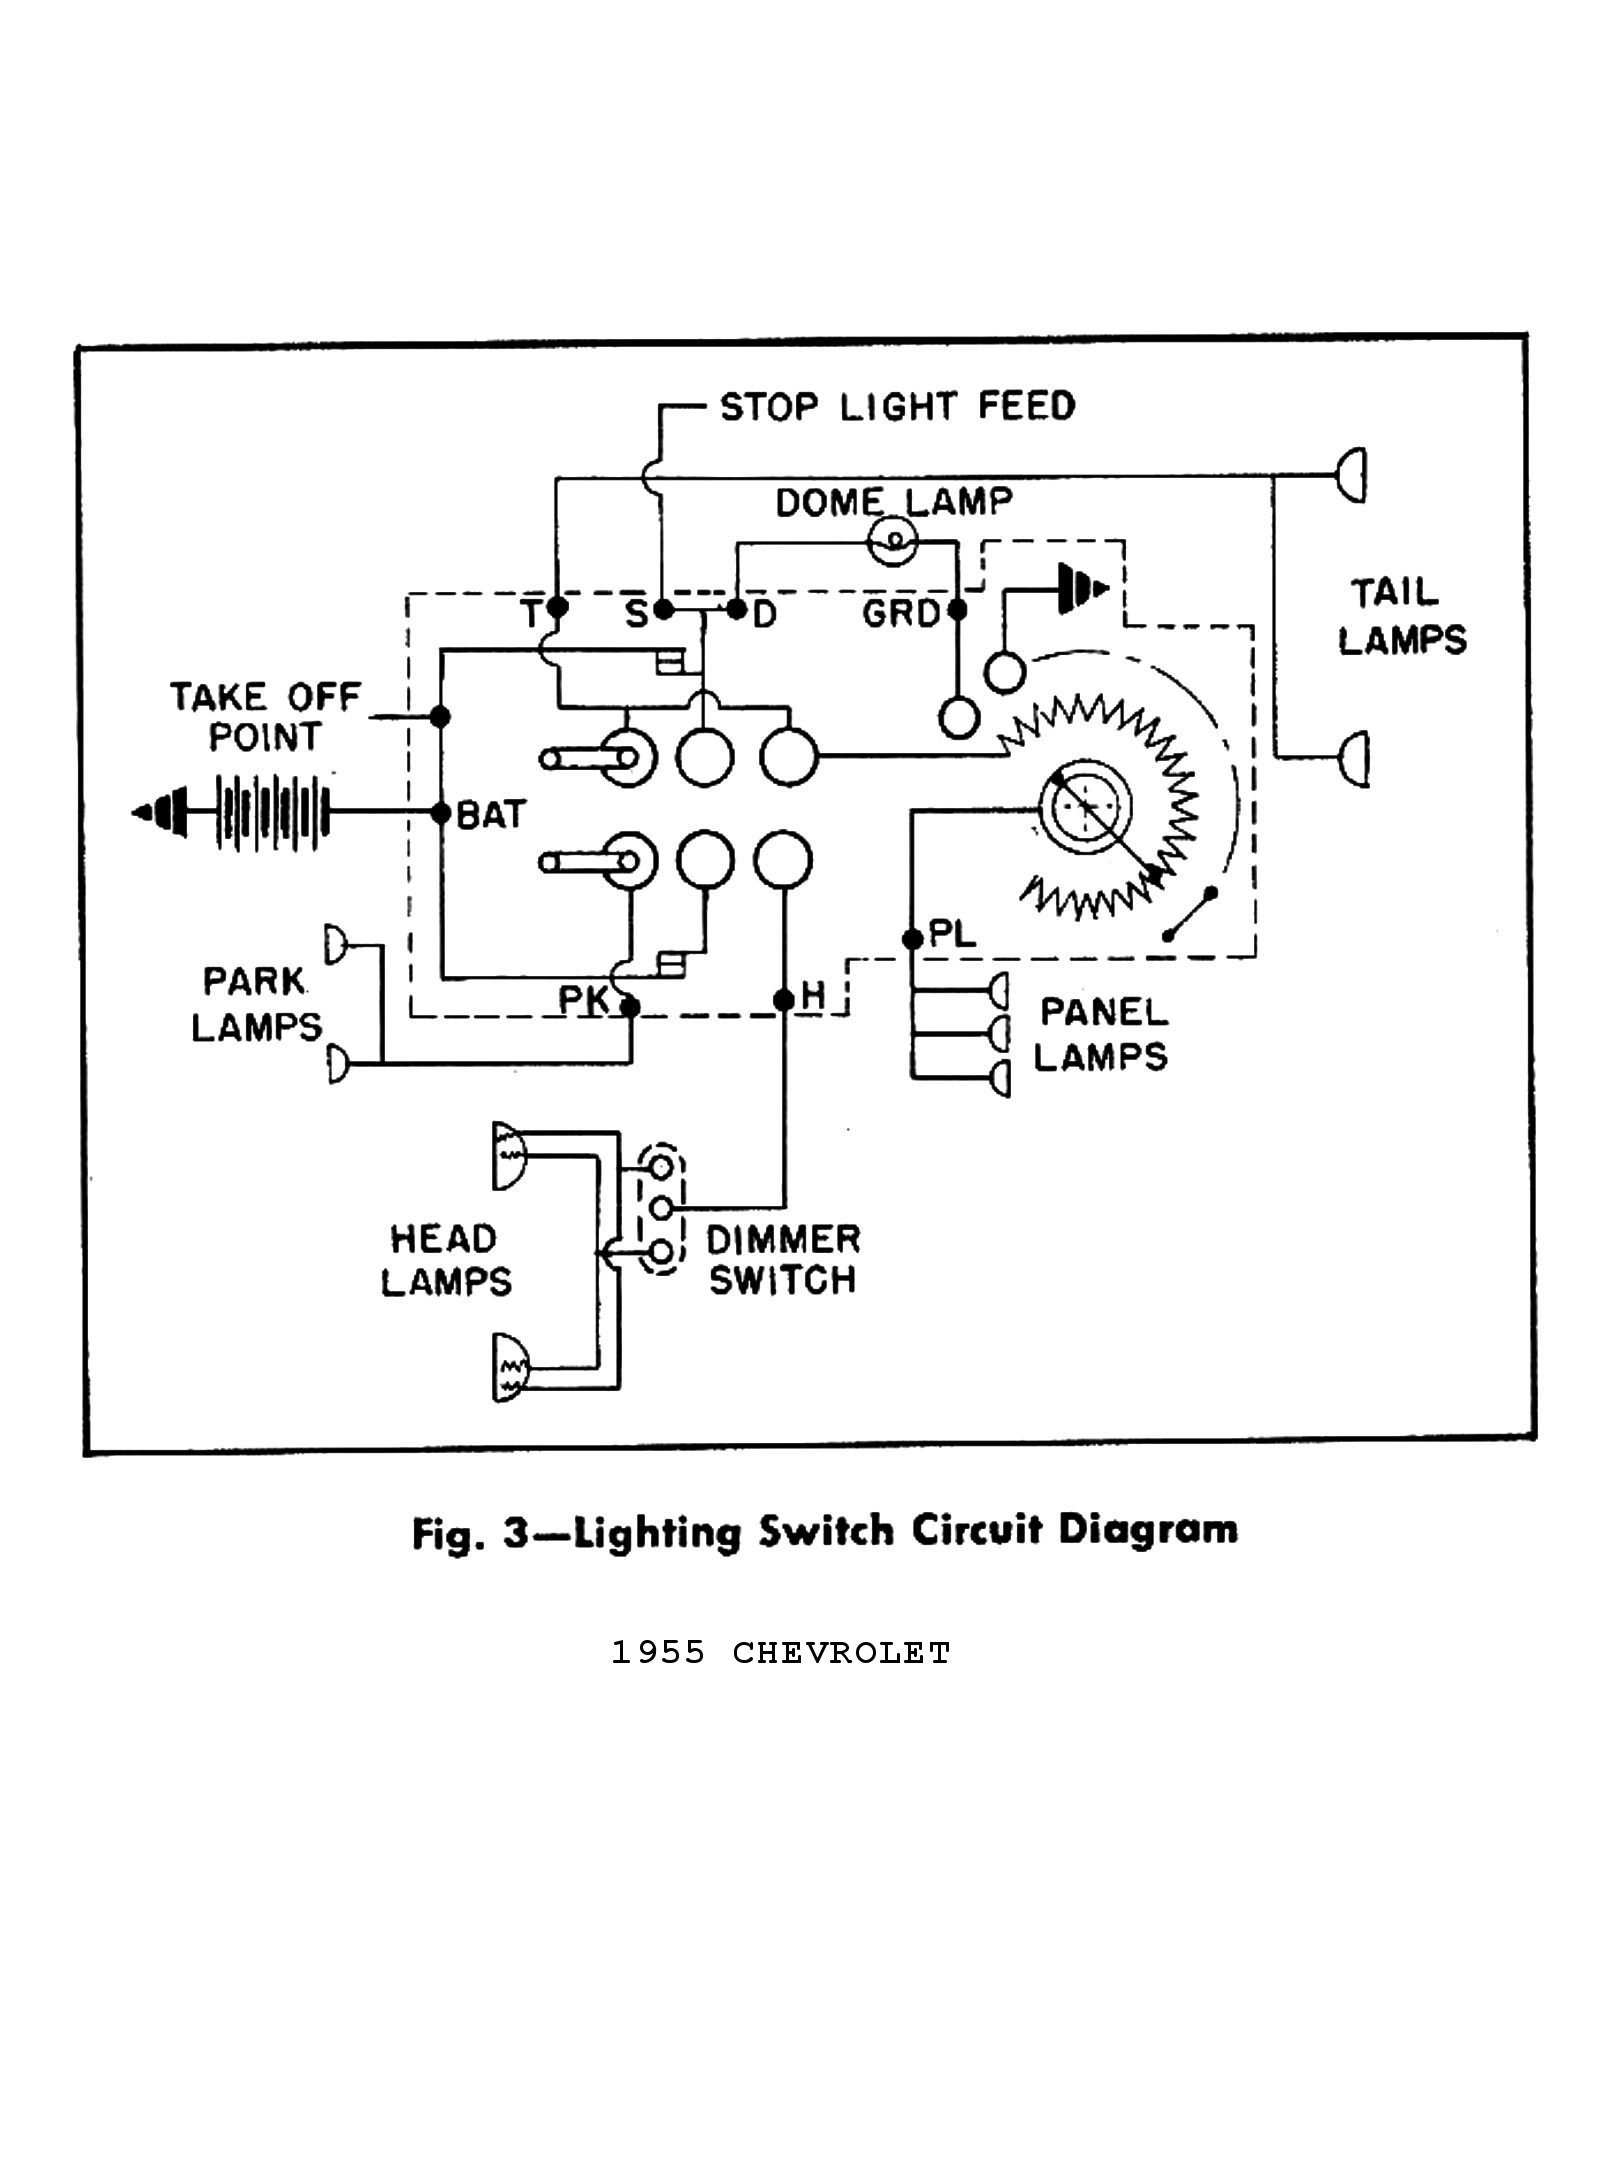 ignition switch wiring diagram chevy wiring diagram and 1992 chevy a remote starter ignition switch half way down steering 2000 chevy monte carlo ignition switch wiring diagram